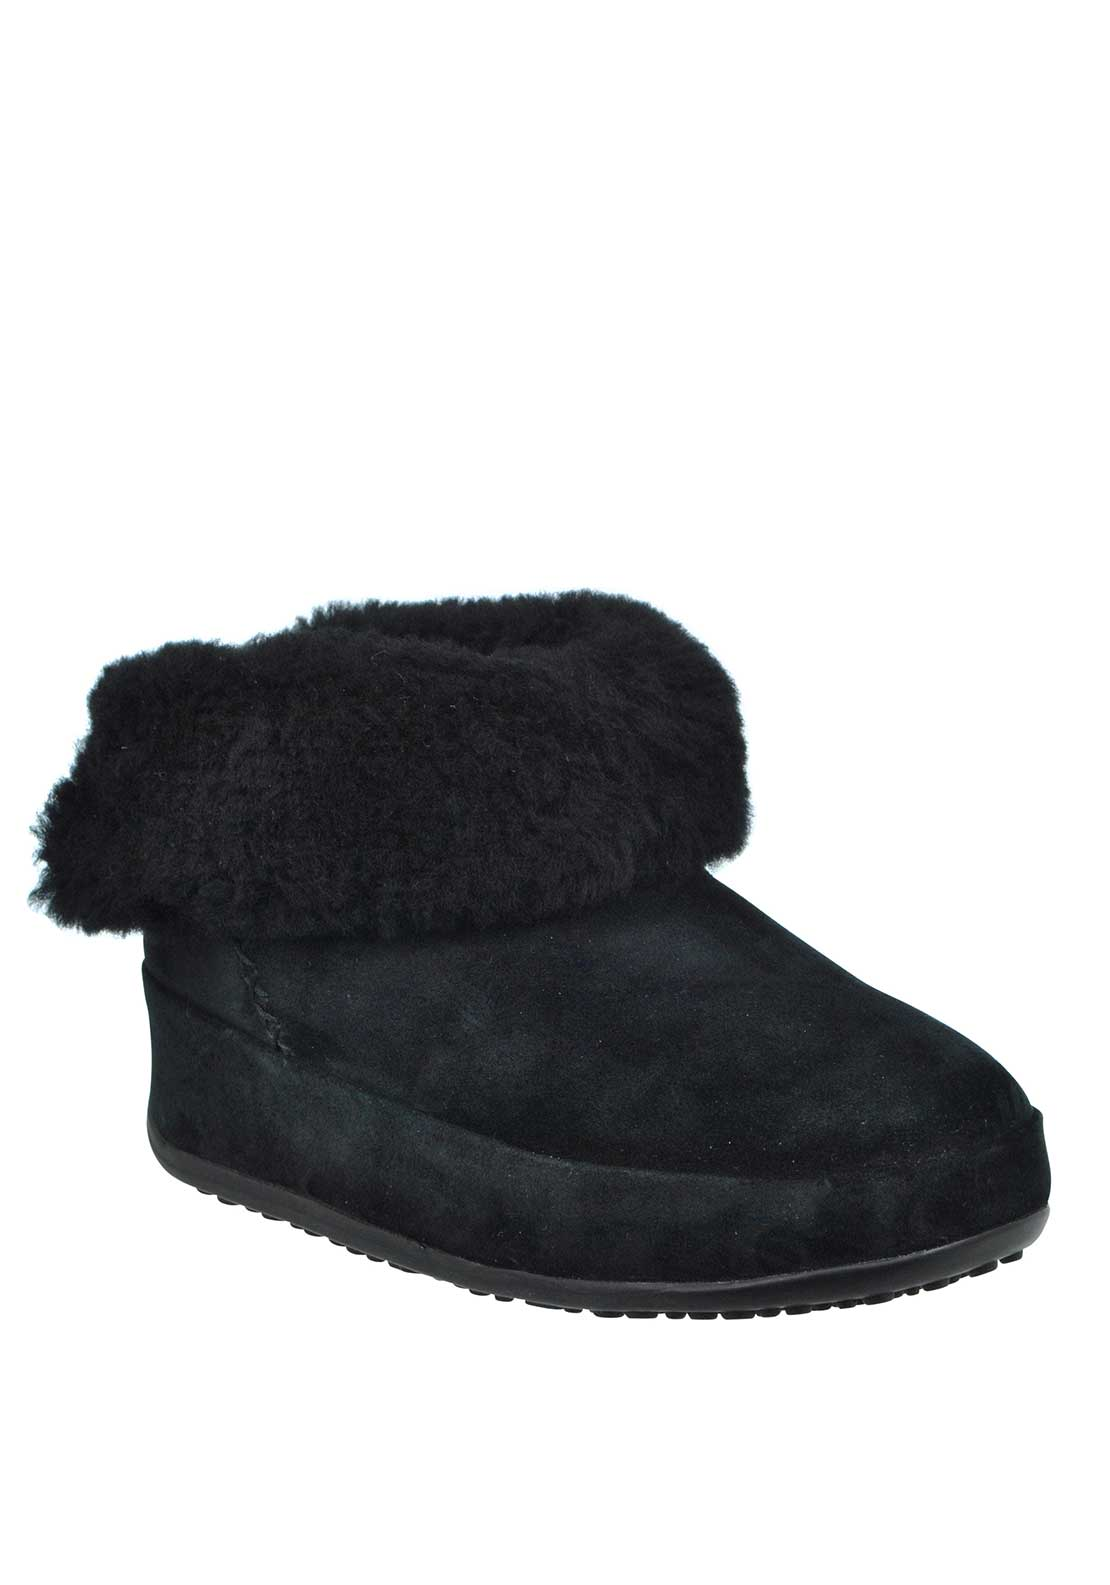 Fit Flop™ Mukluk™ Suede Shorty Boots, Black